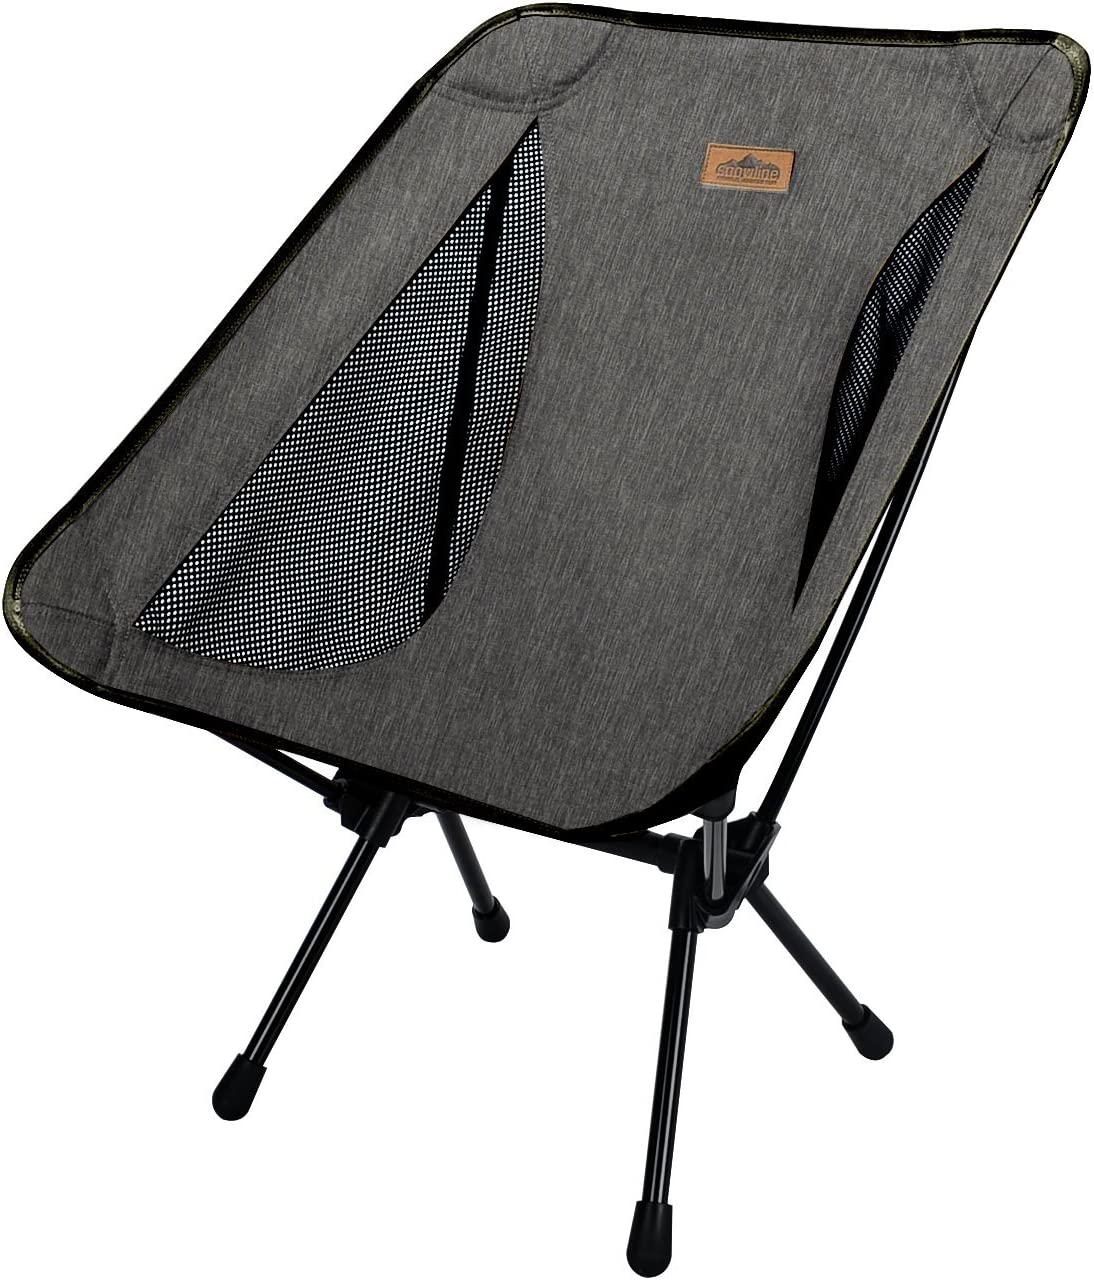 SNOWLINE Lasse Chair, Medium, Dark Grey